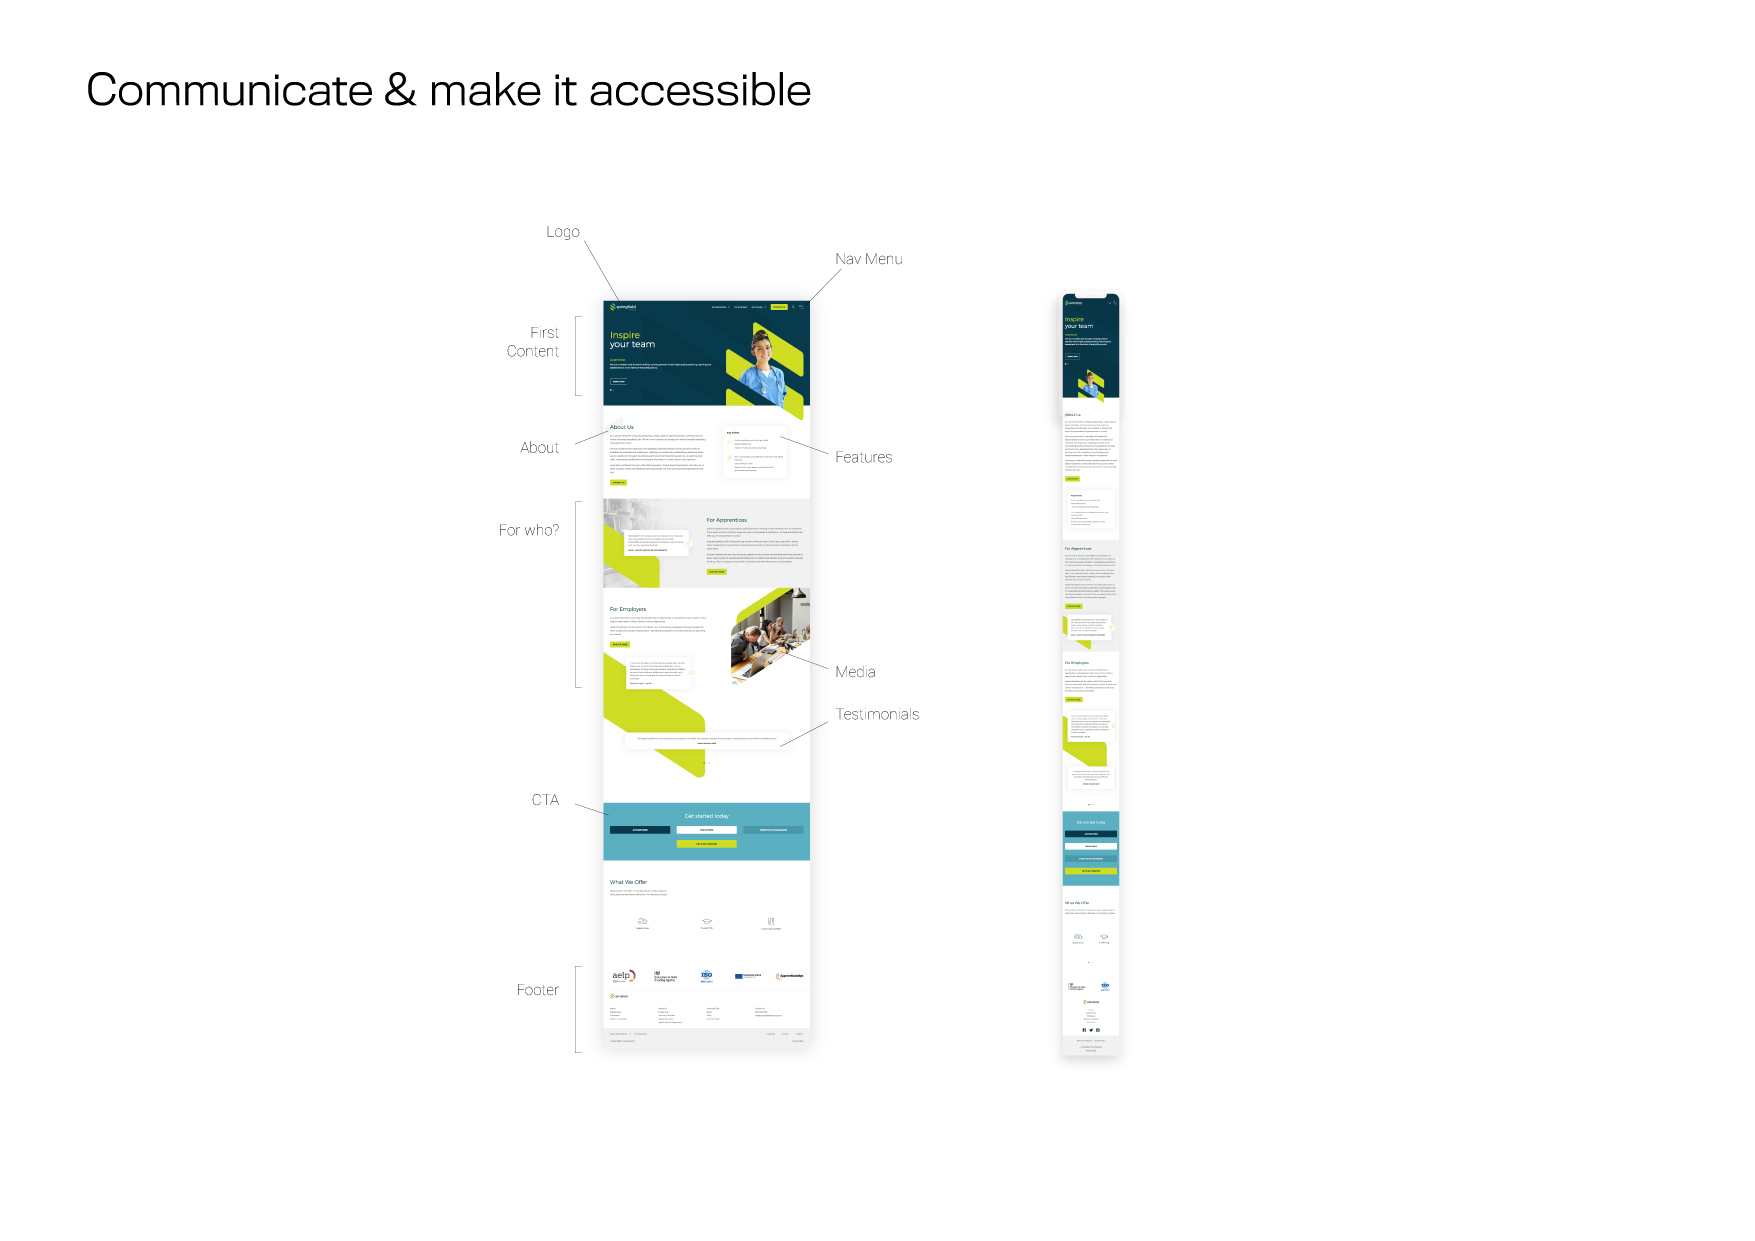 Mobile & Web Accessibility